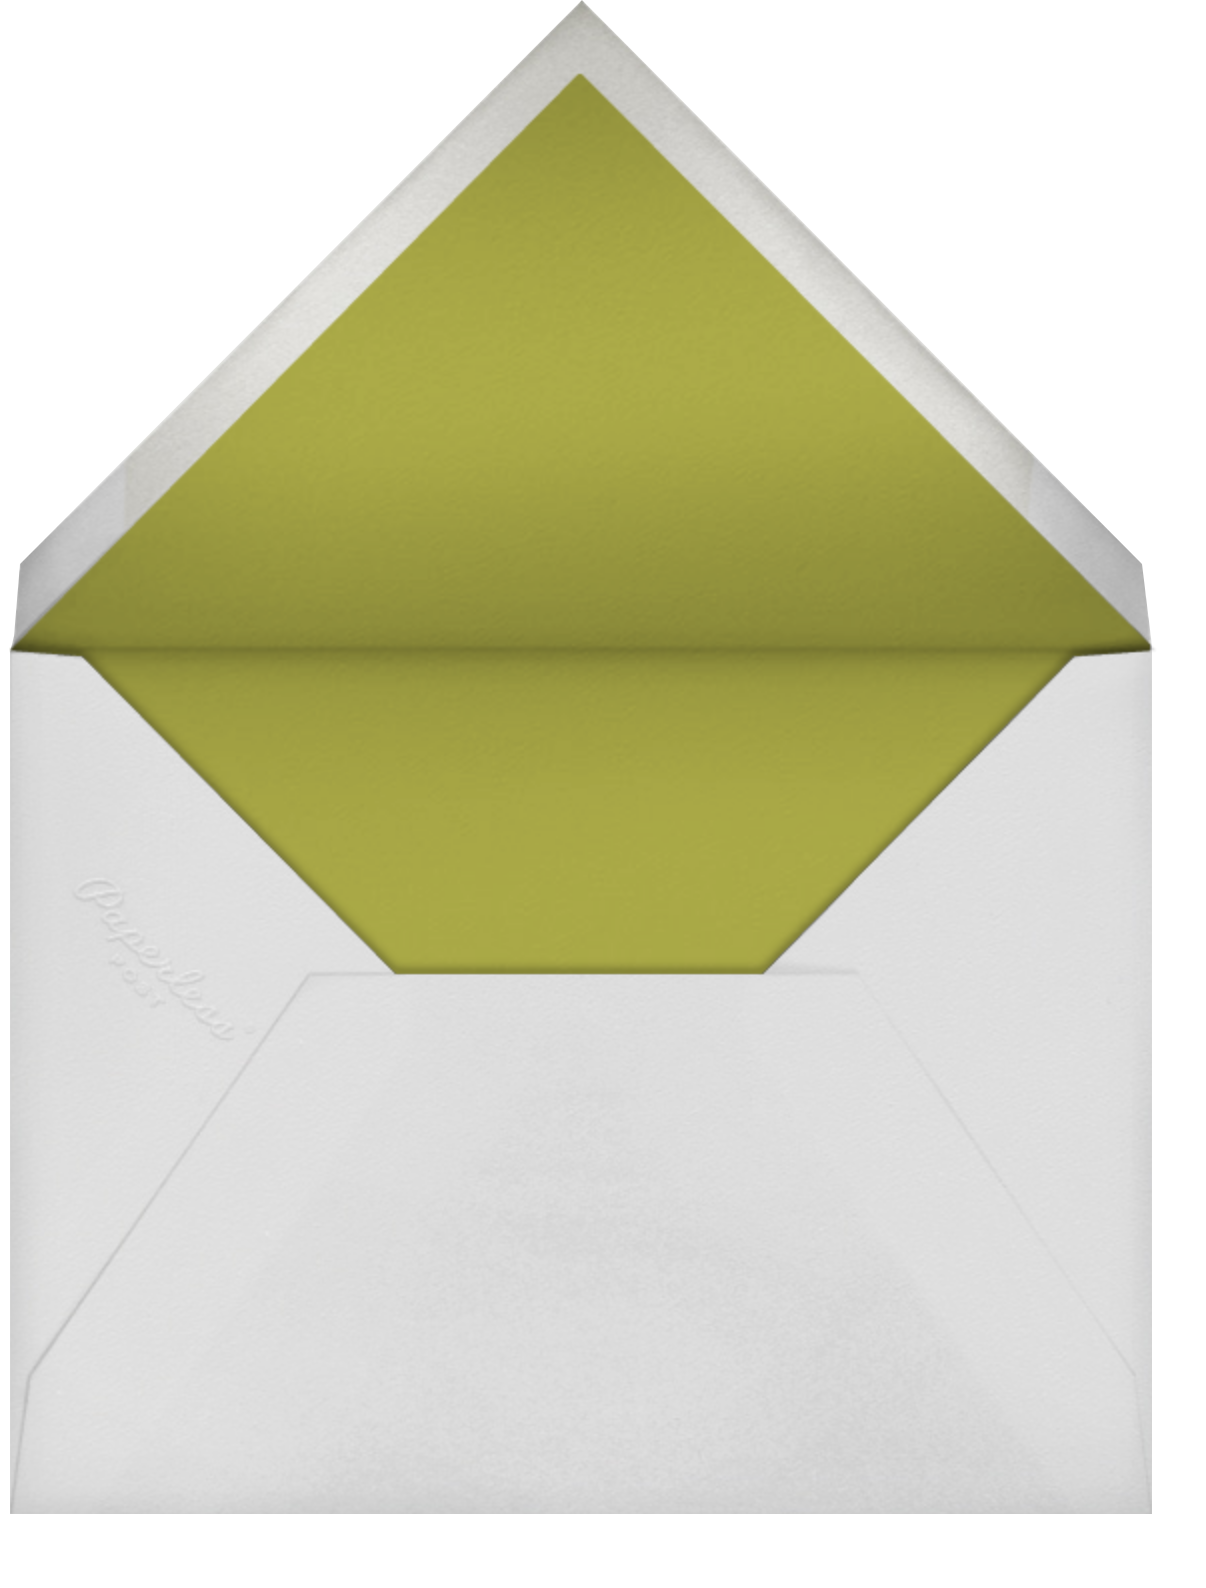 Let's Hang - White - Rifle Paper Co. - Adult birthday - envelope back